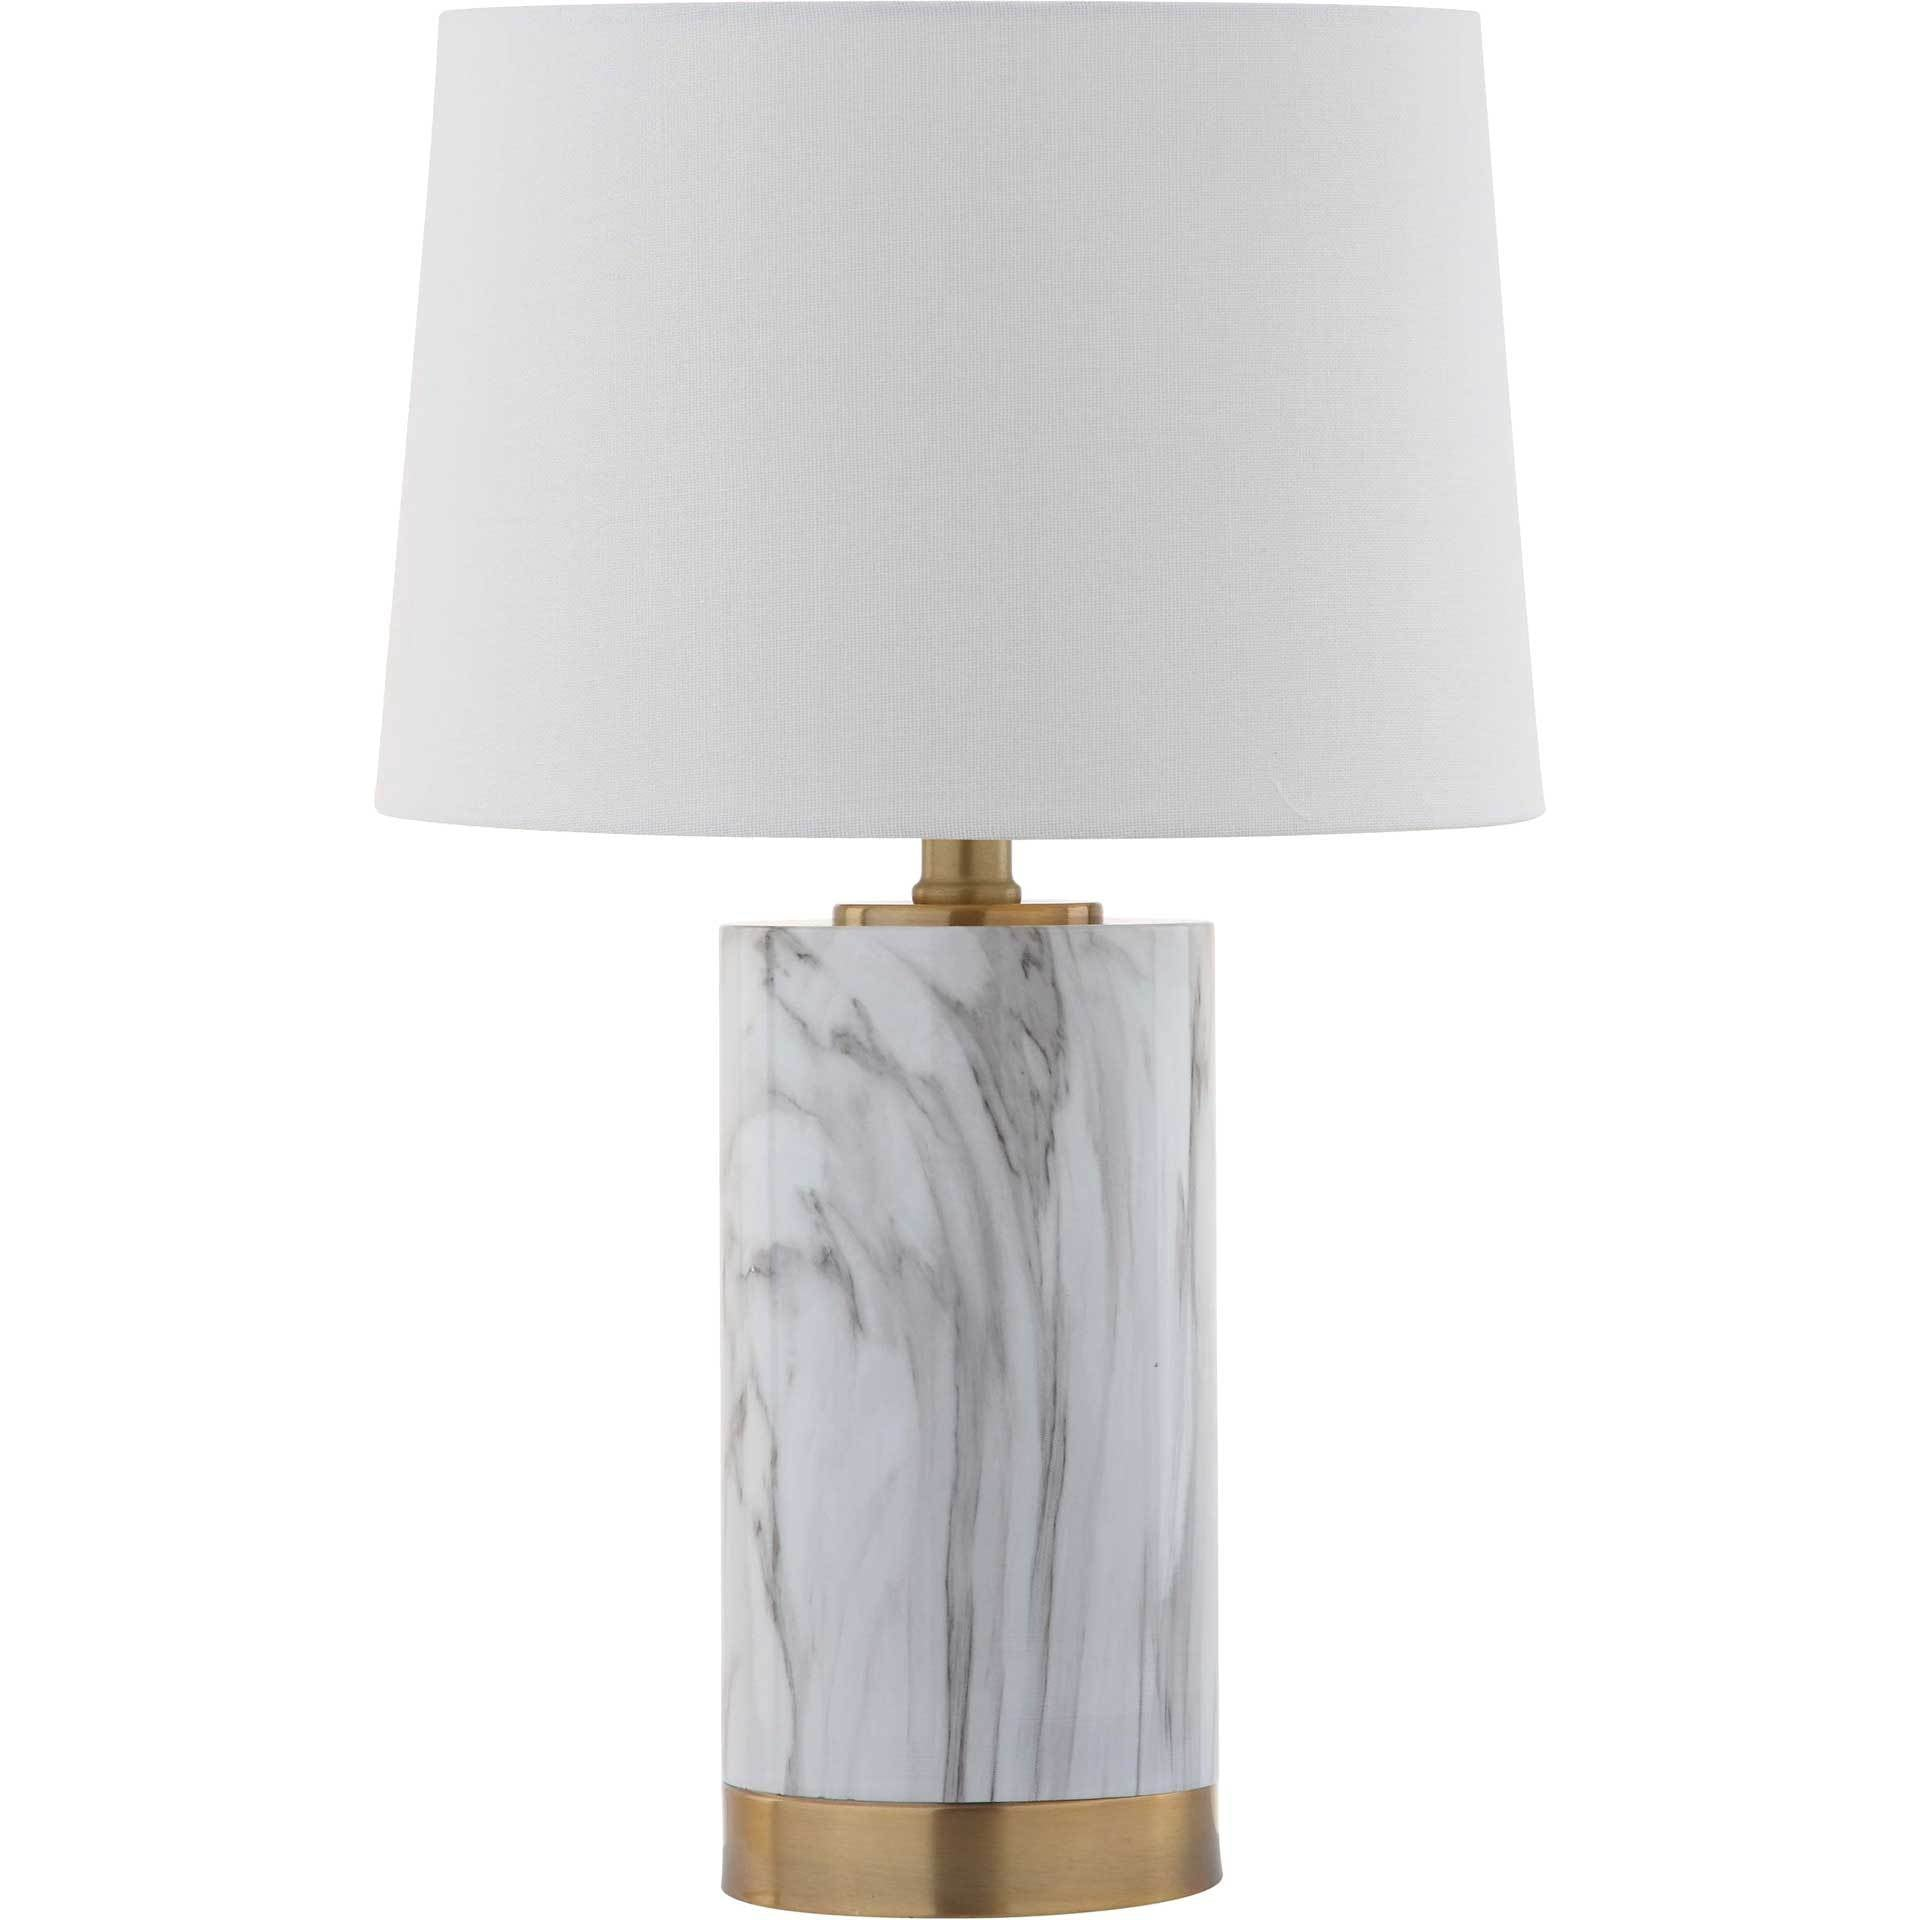 Clara Table Lamp White/Black Marble